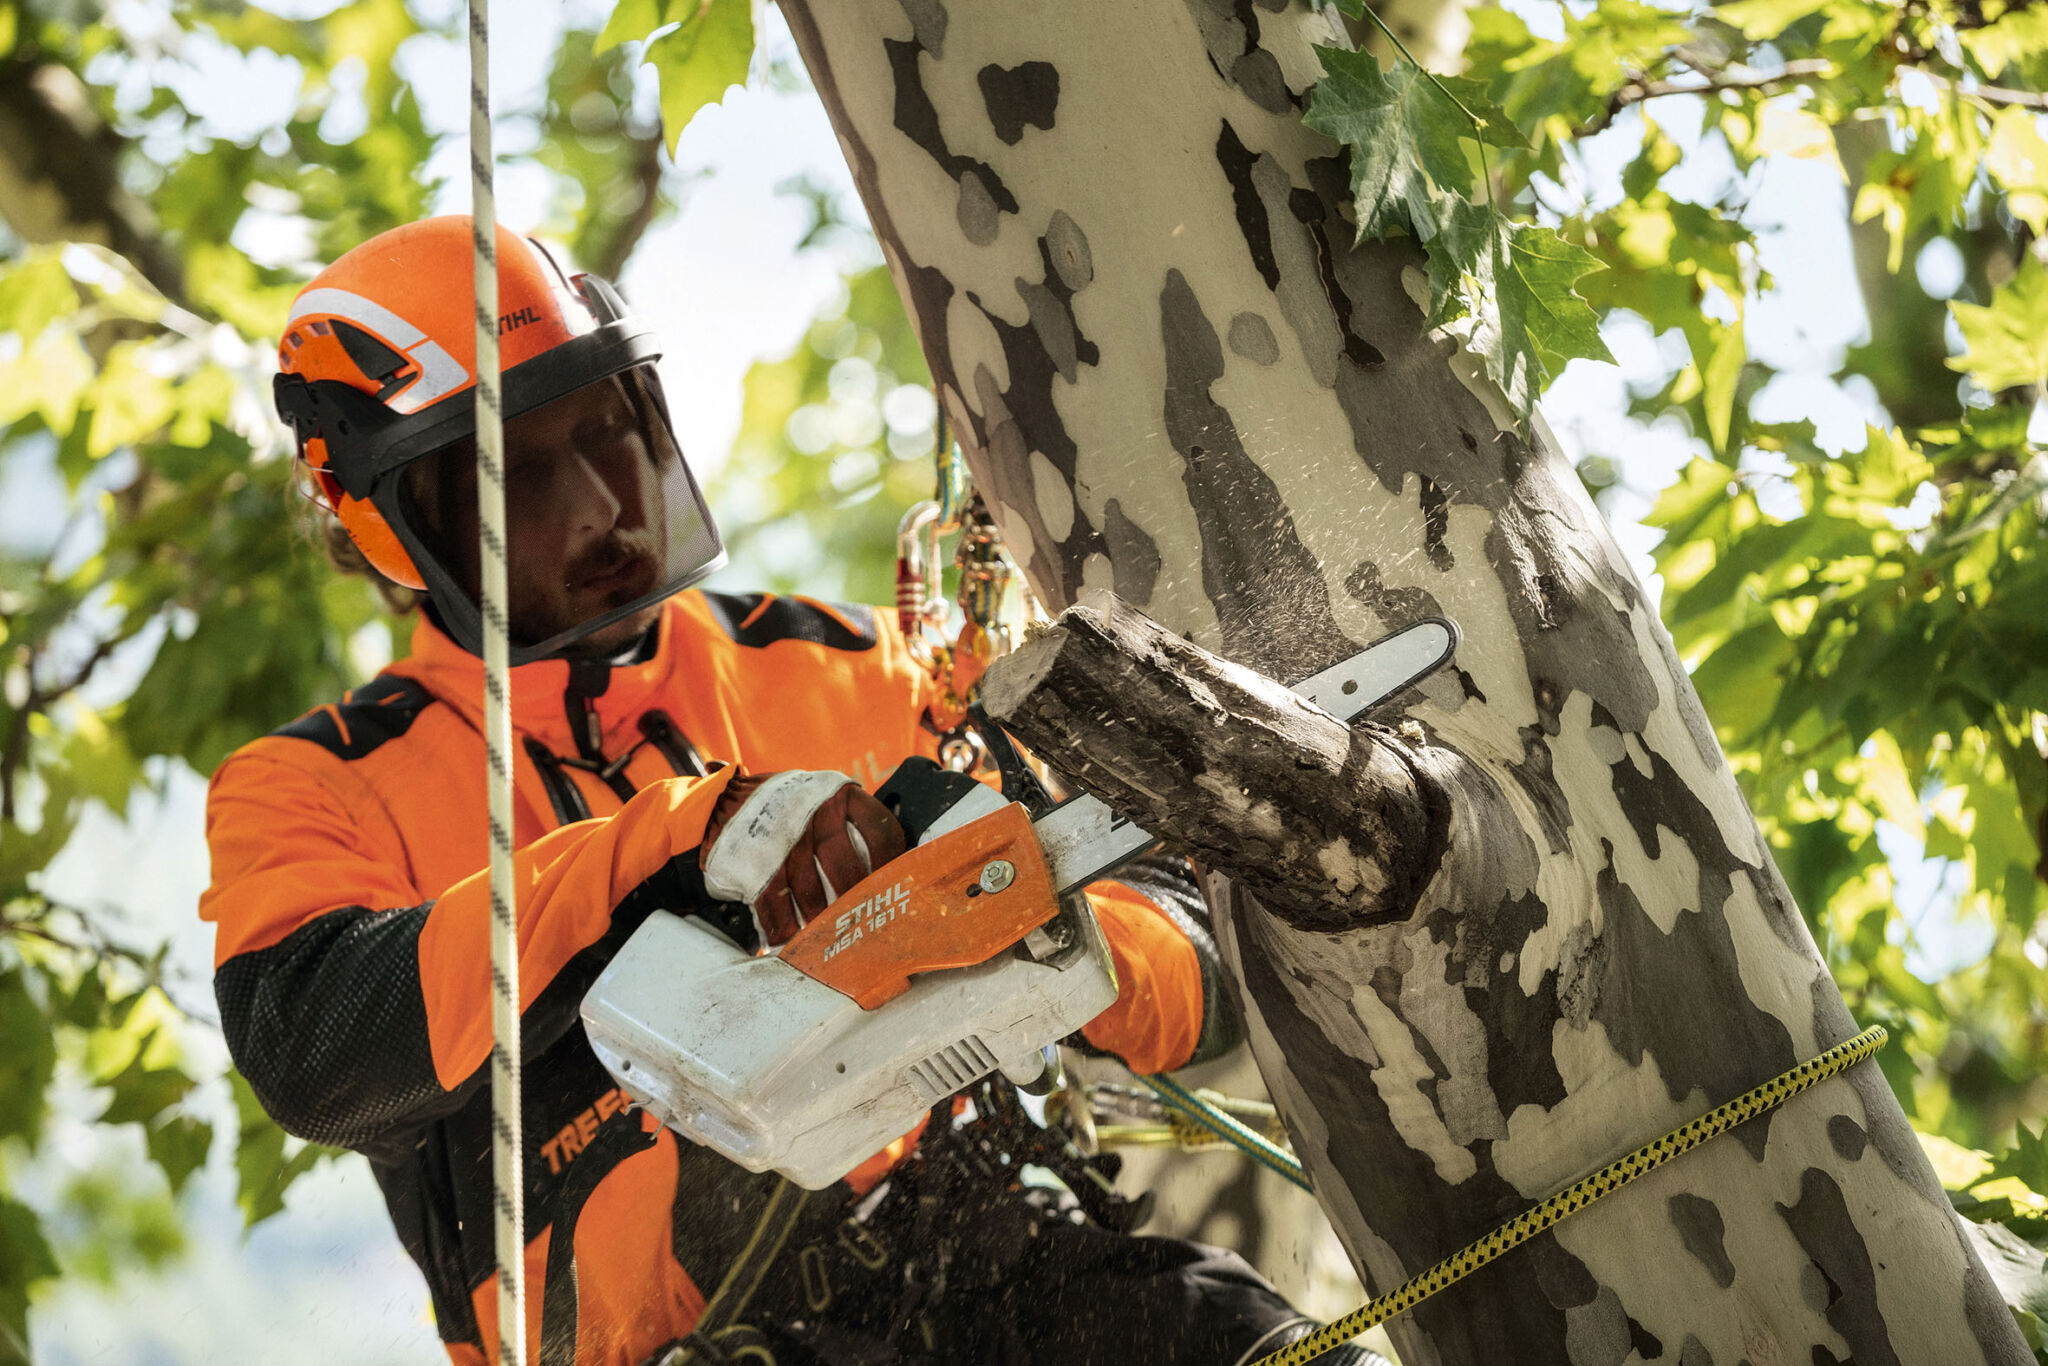 Stihl Advance X-Climb |copyright: Stihl